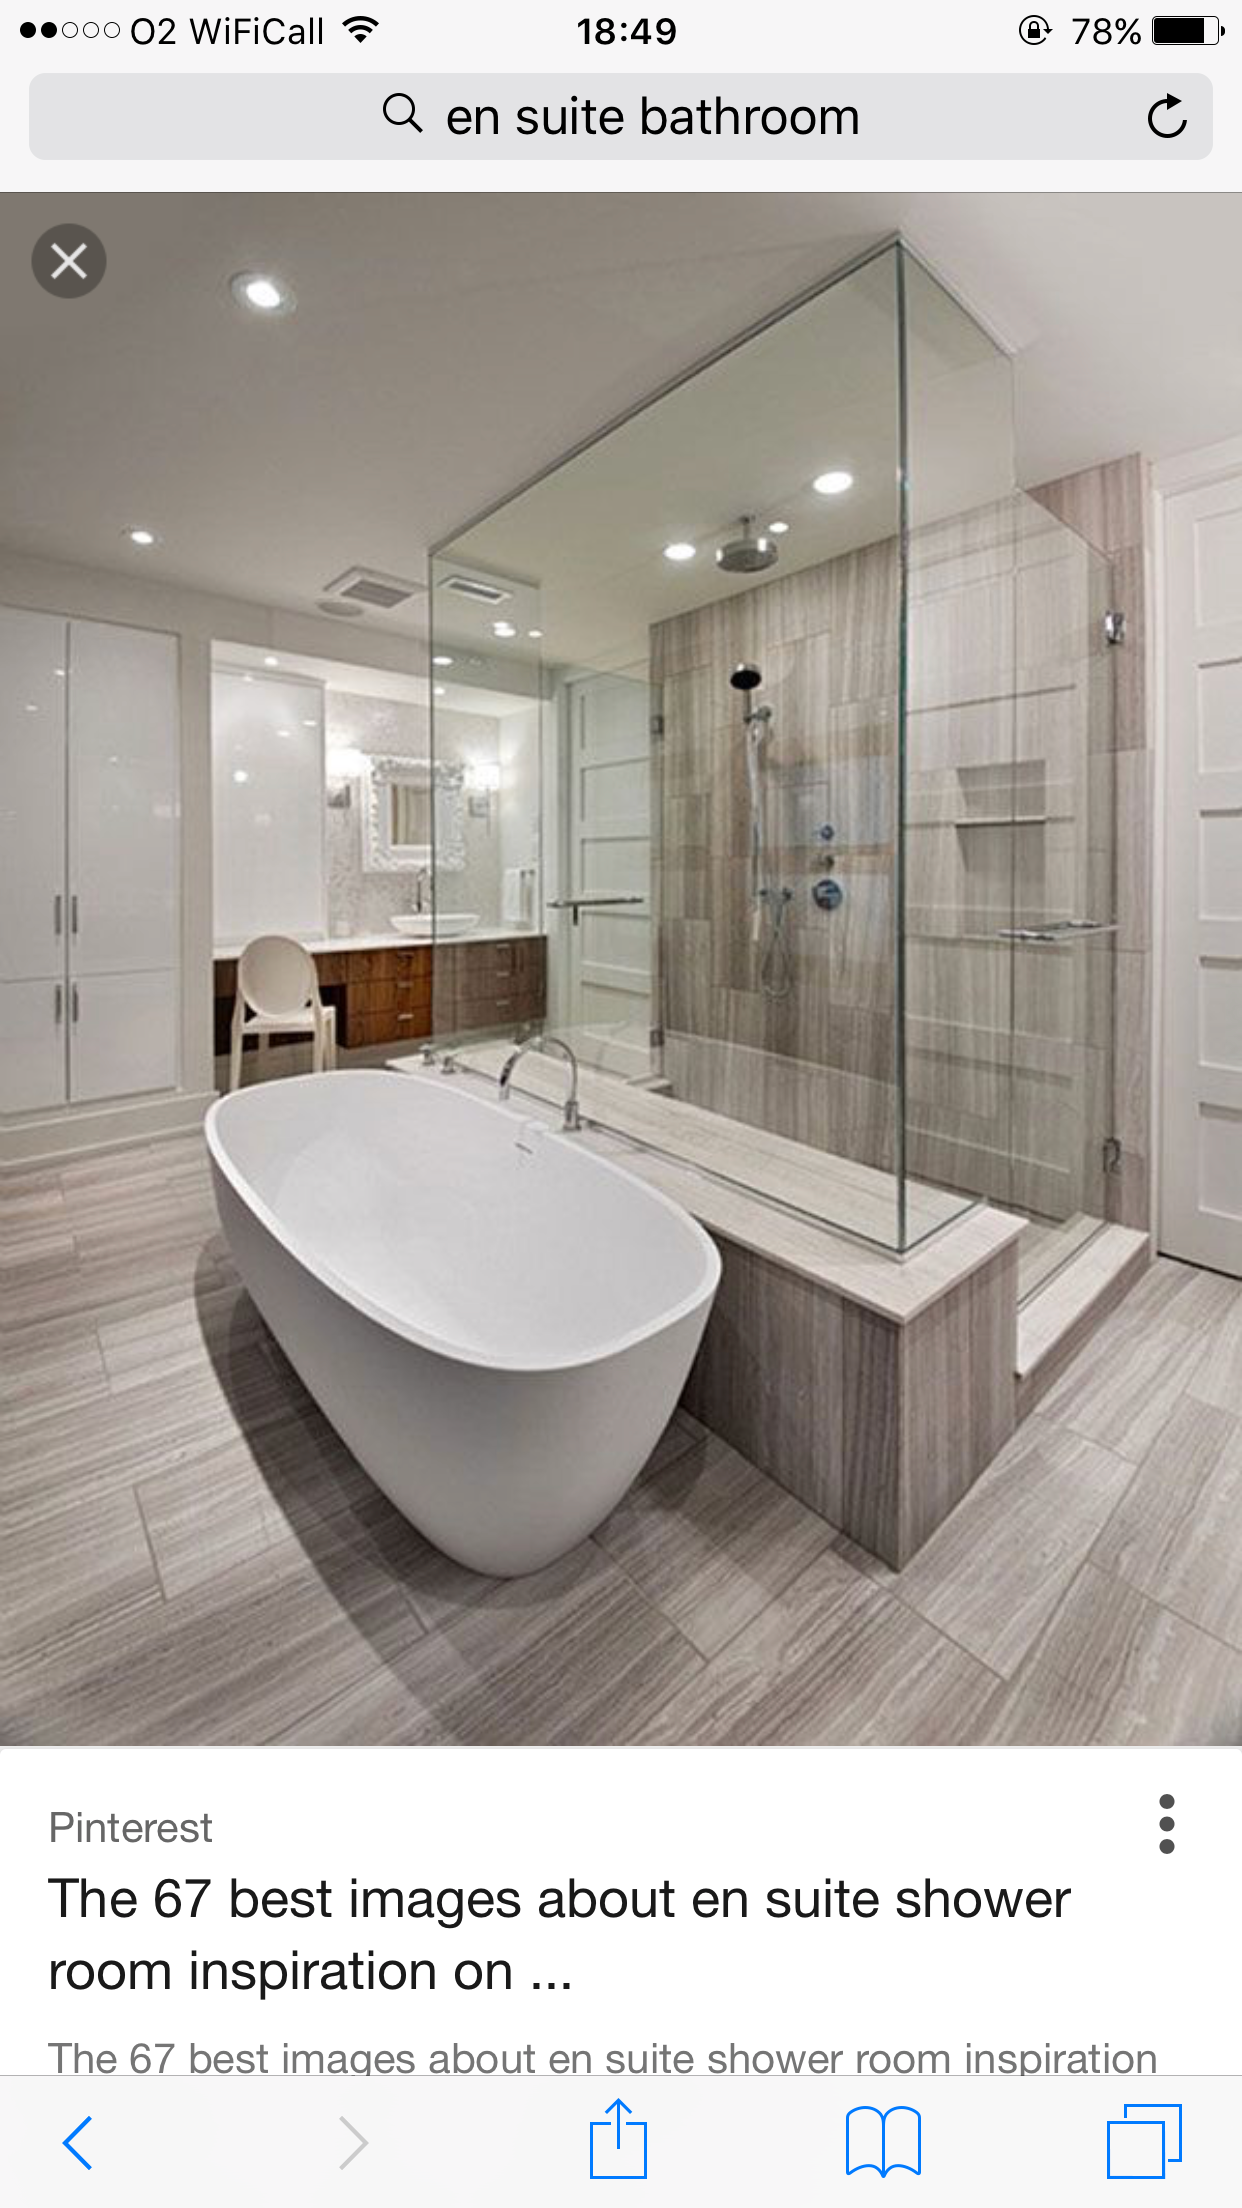 Find this Pin and more on Bathrooms and en suites by m_dulson.